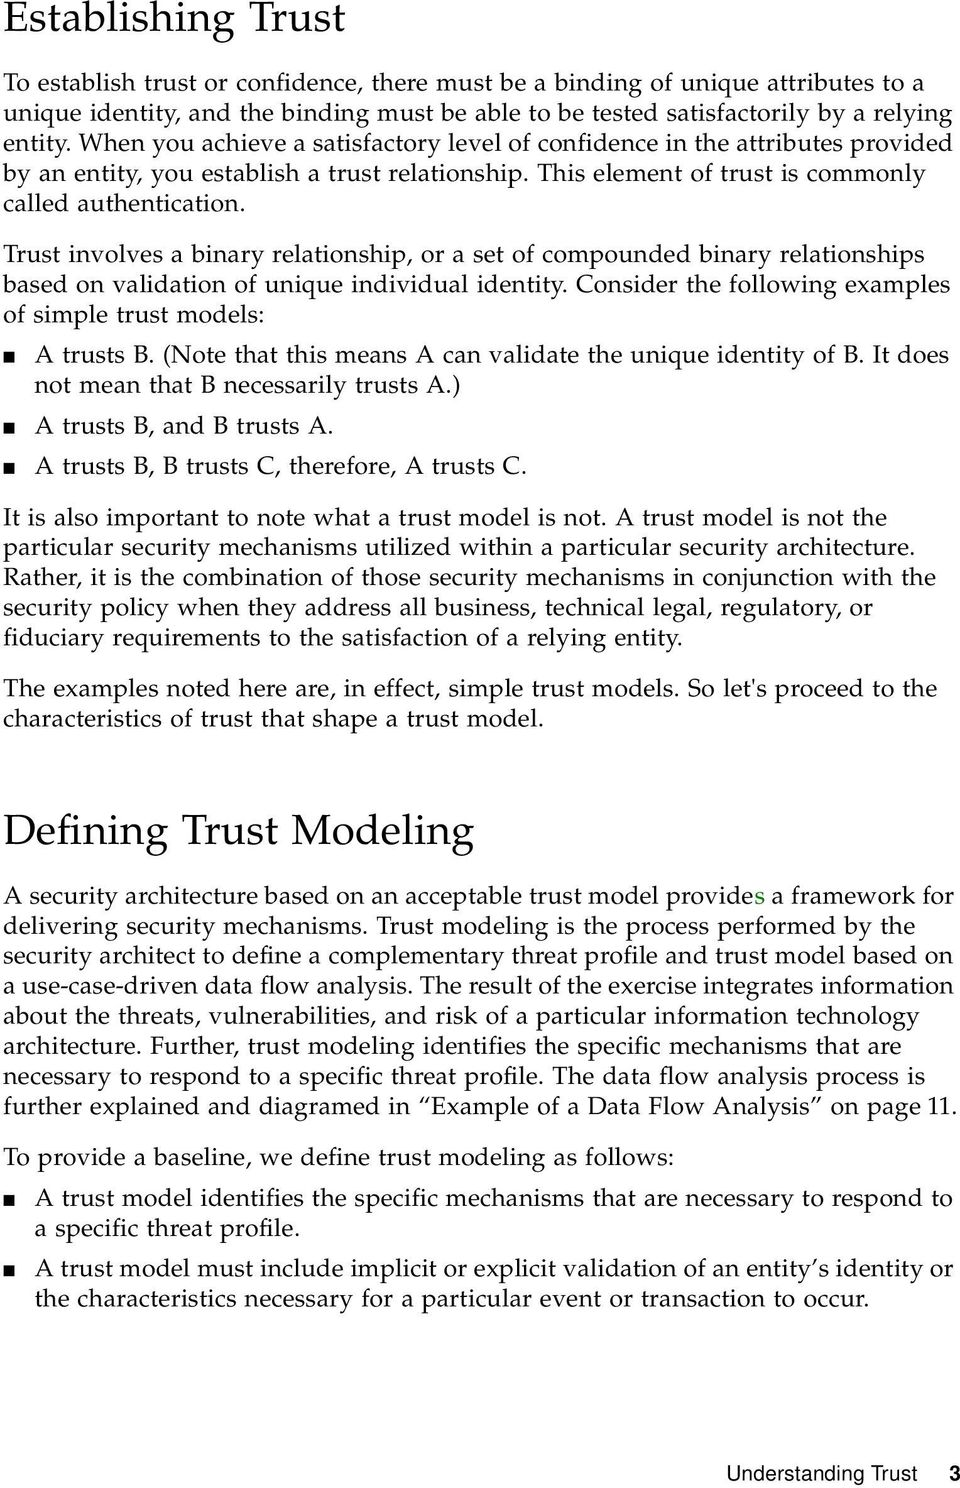 Trust involves a binary relationship, or a set of compounded binary relationships based on validation of unique individual identity. Consider the following examples of simple trust models: A trusts B.